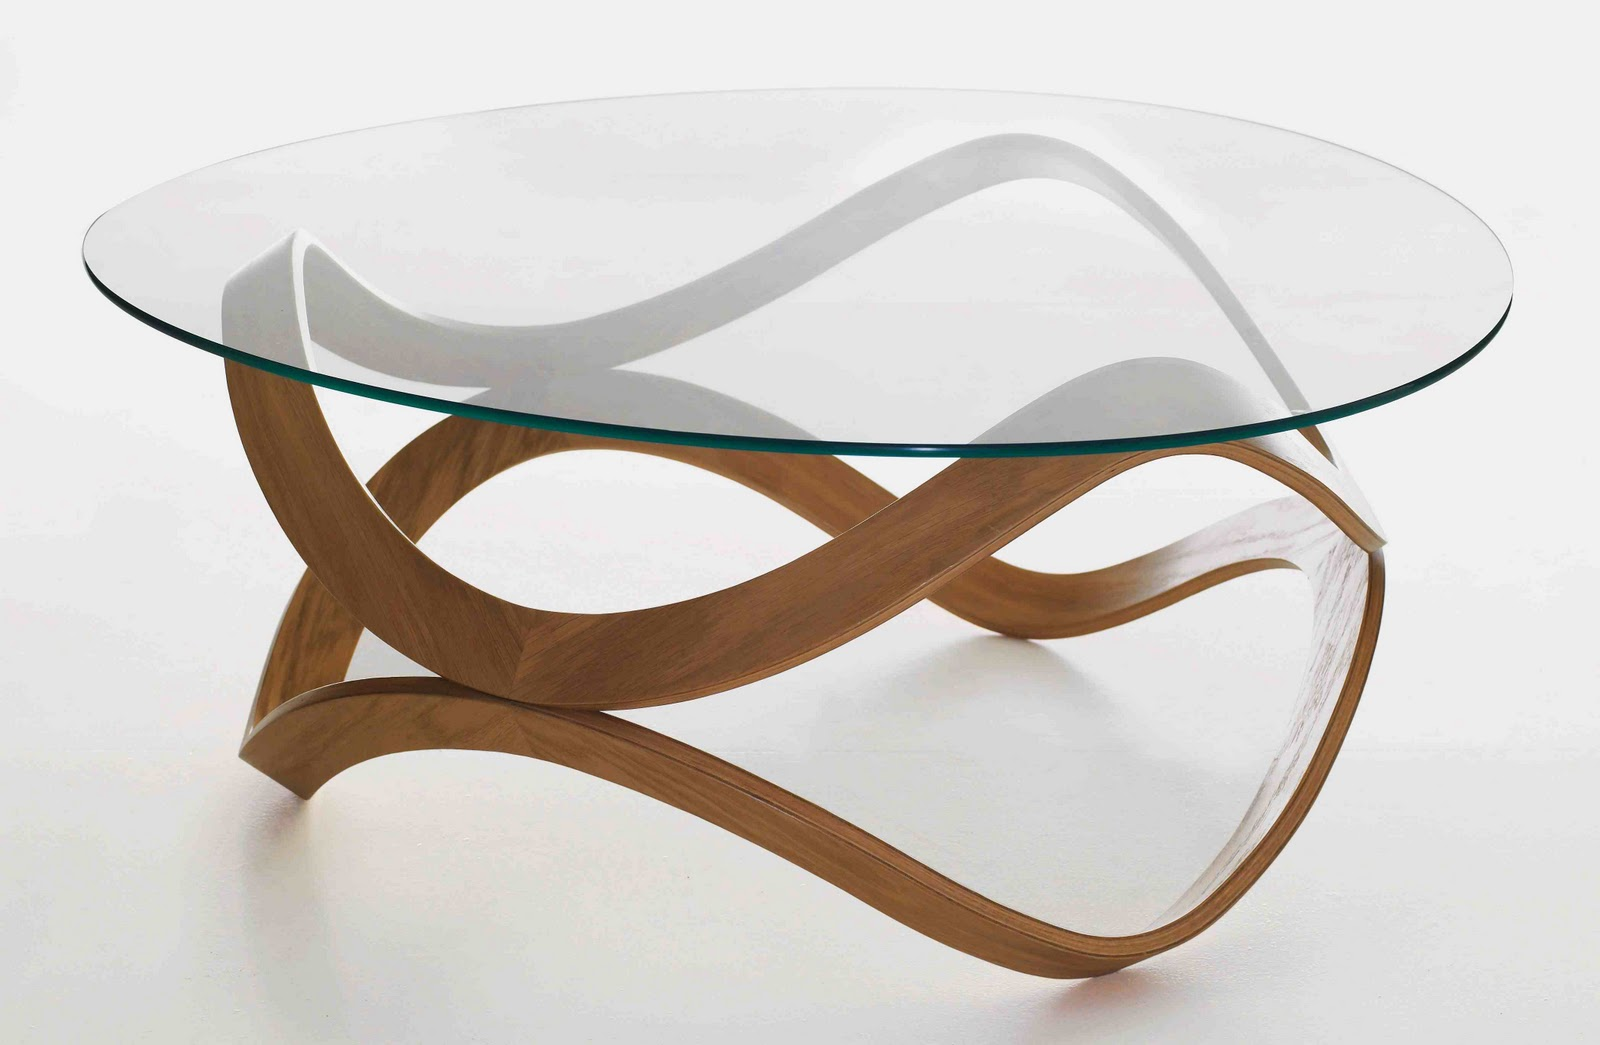 Verre de table design en image - Salon art de la table ...